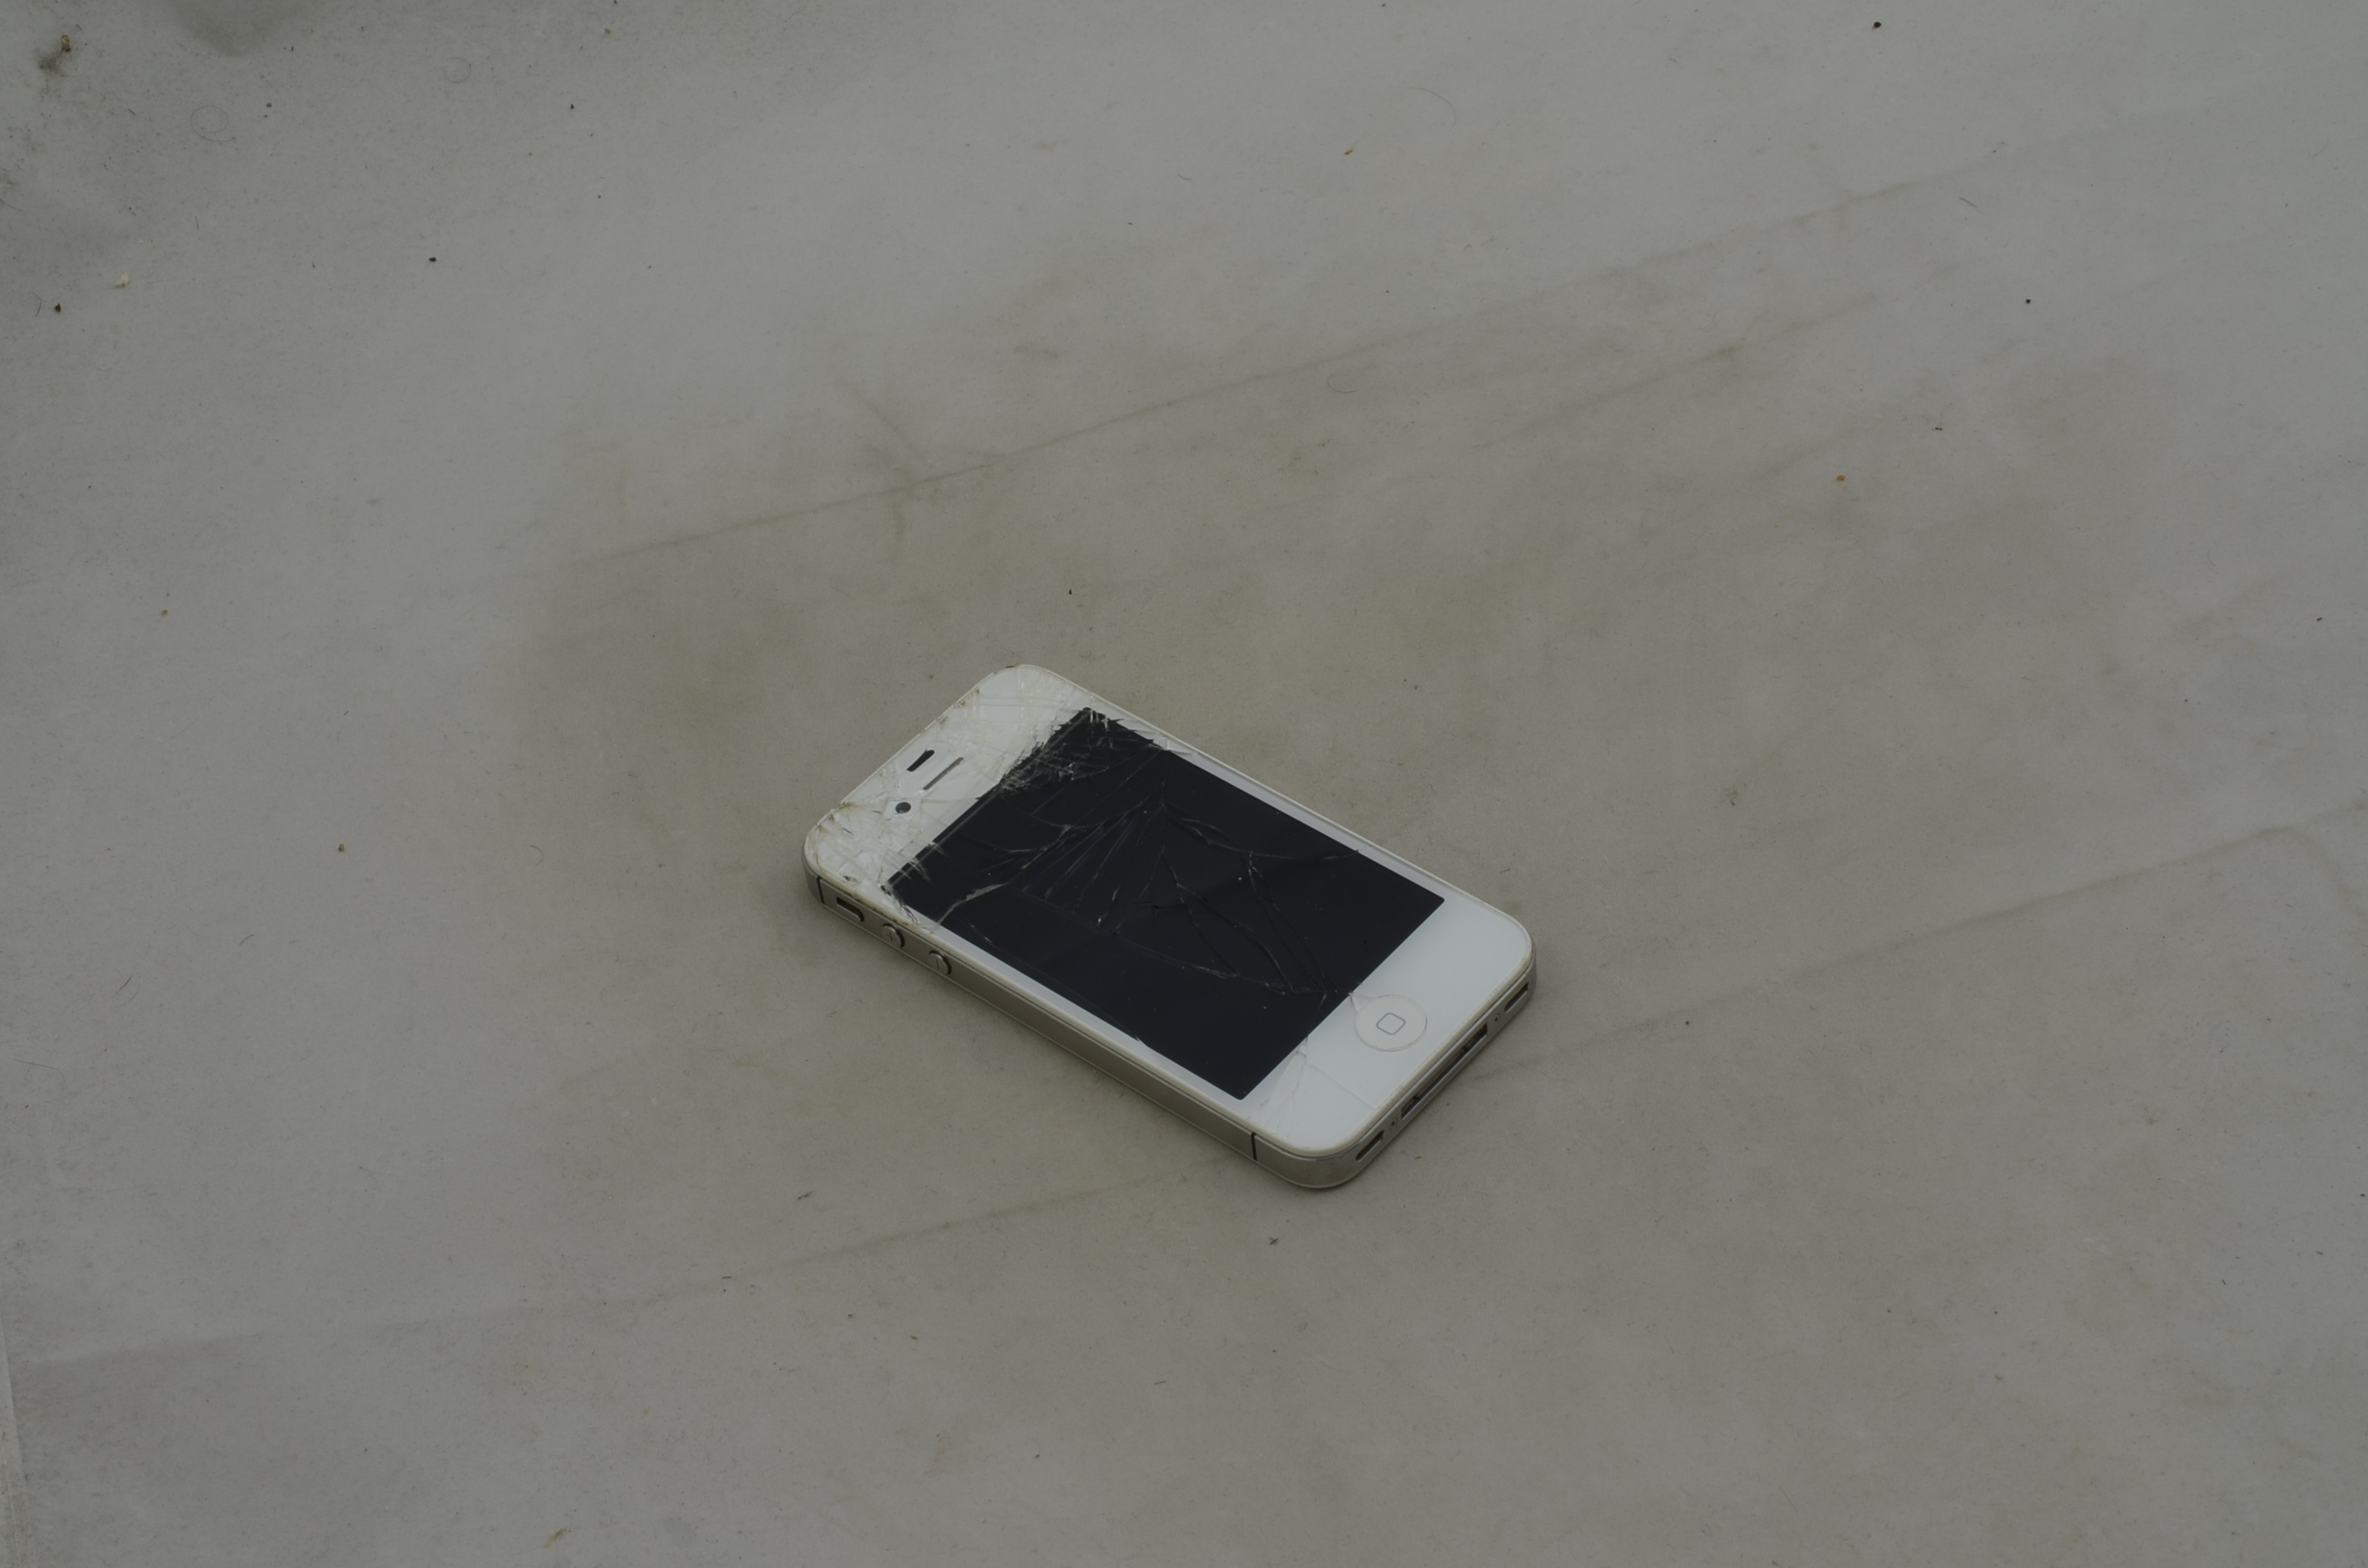 Produktbild von iPhone 4S mit defektem Display